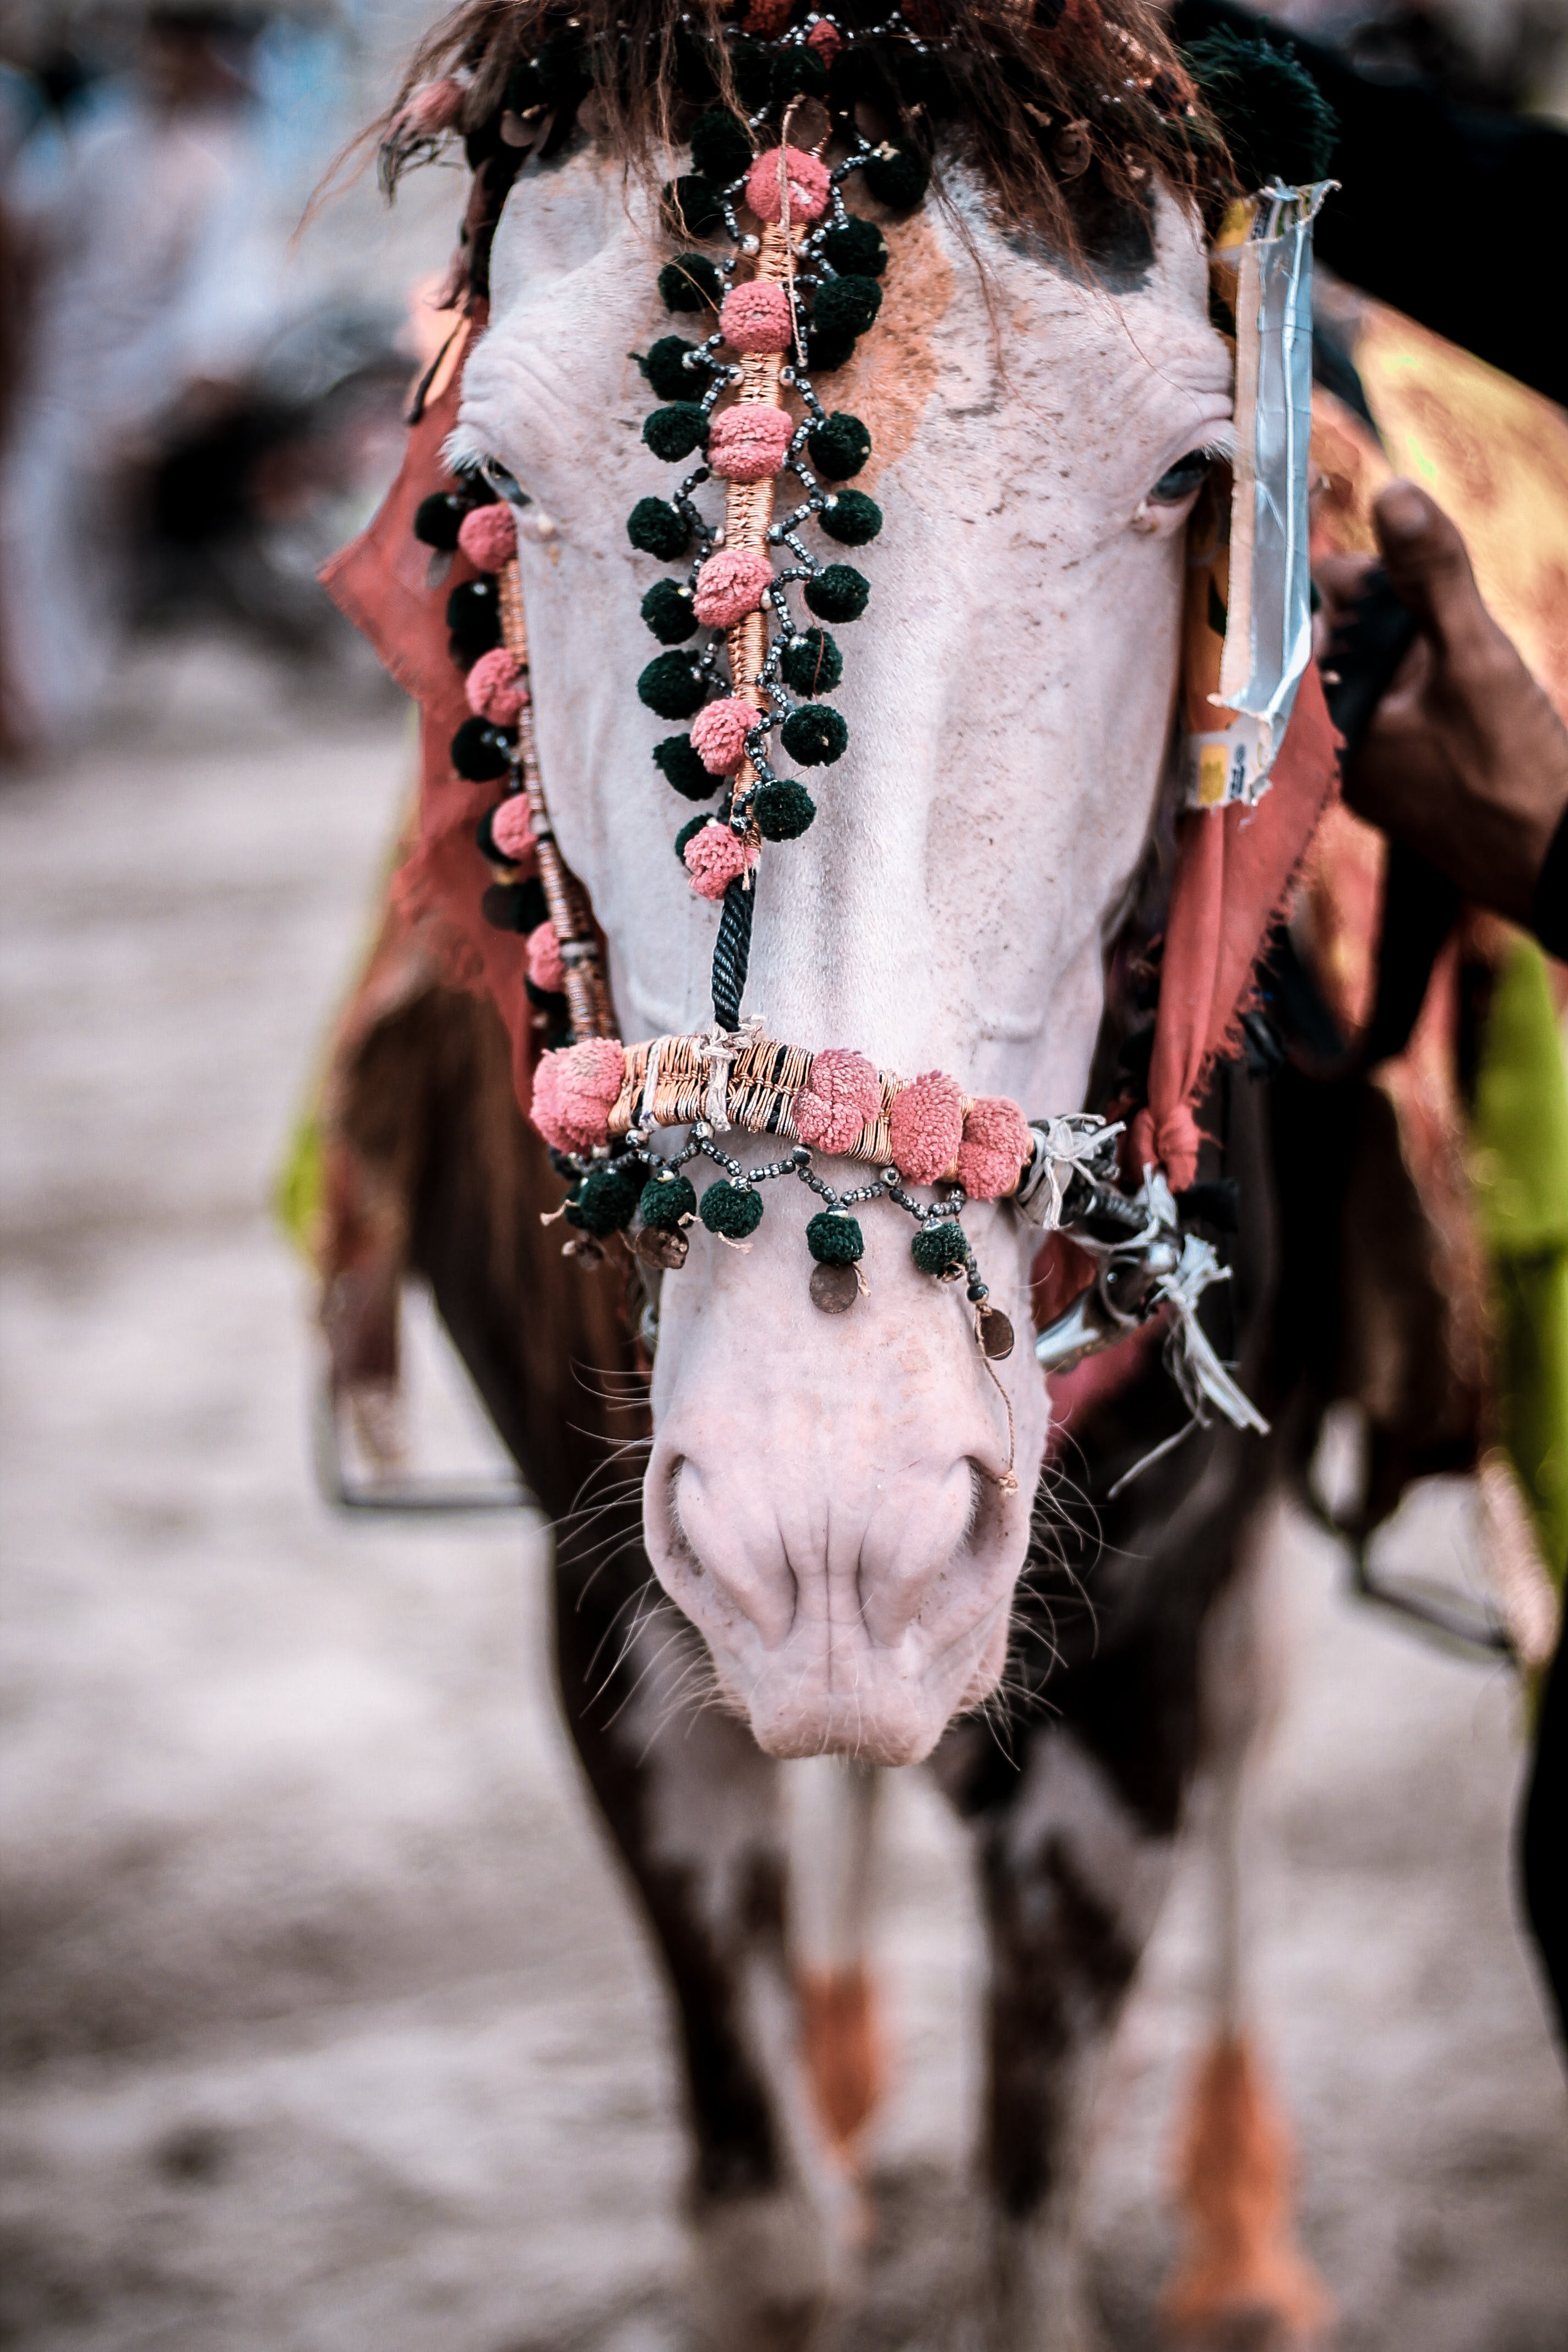 Closeup Photo of Horse Wearing Accessories